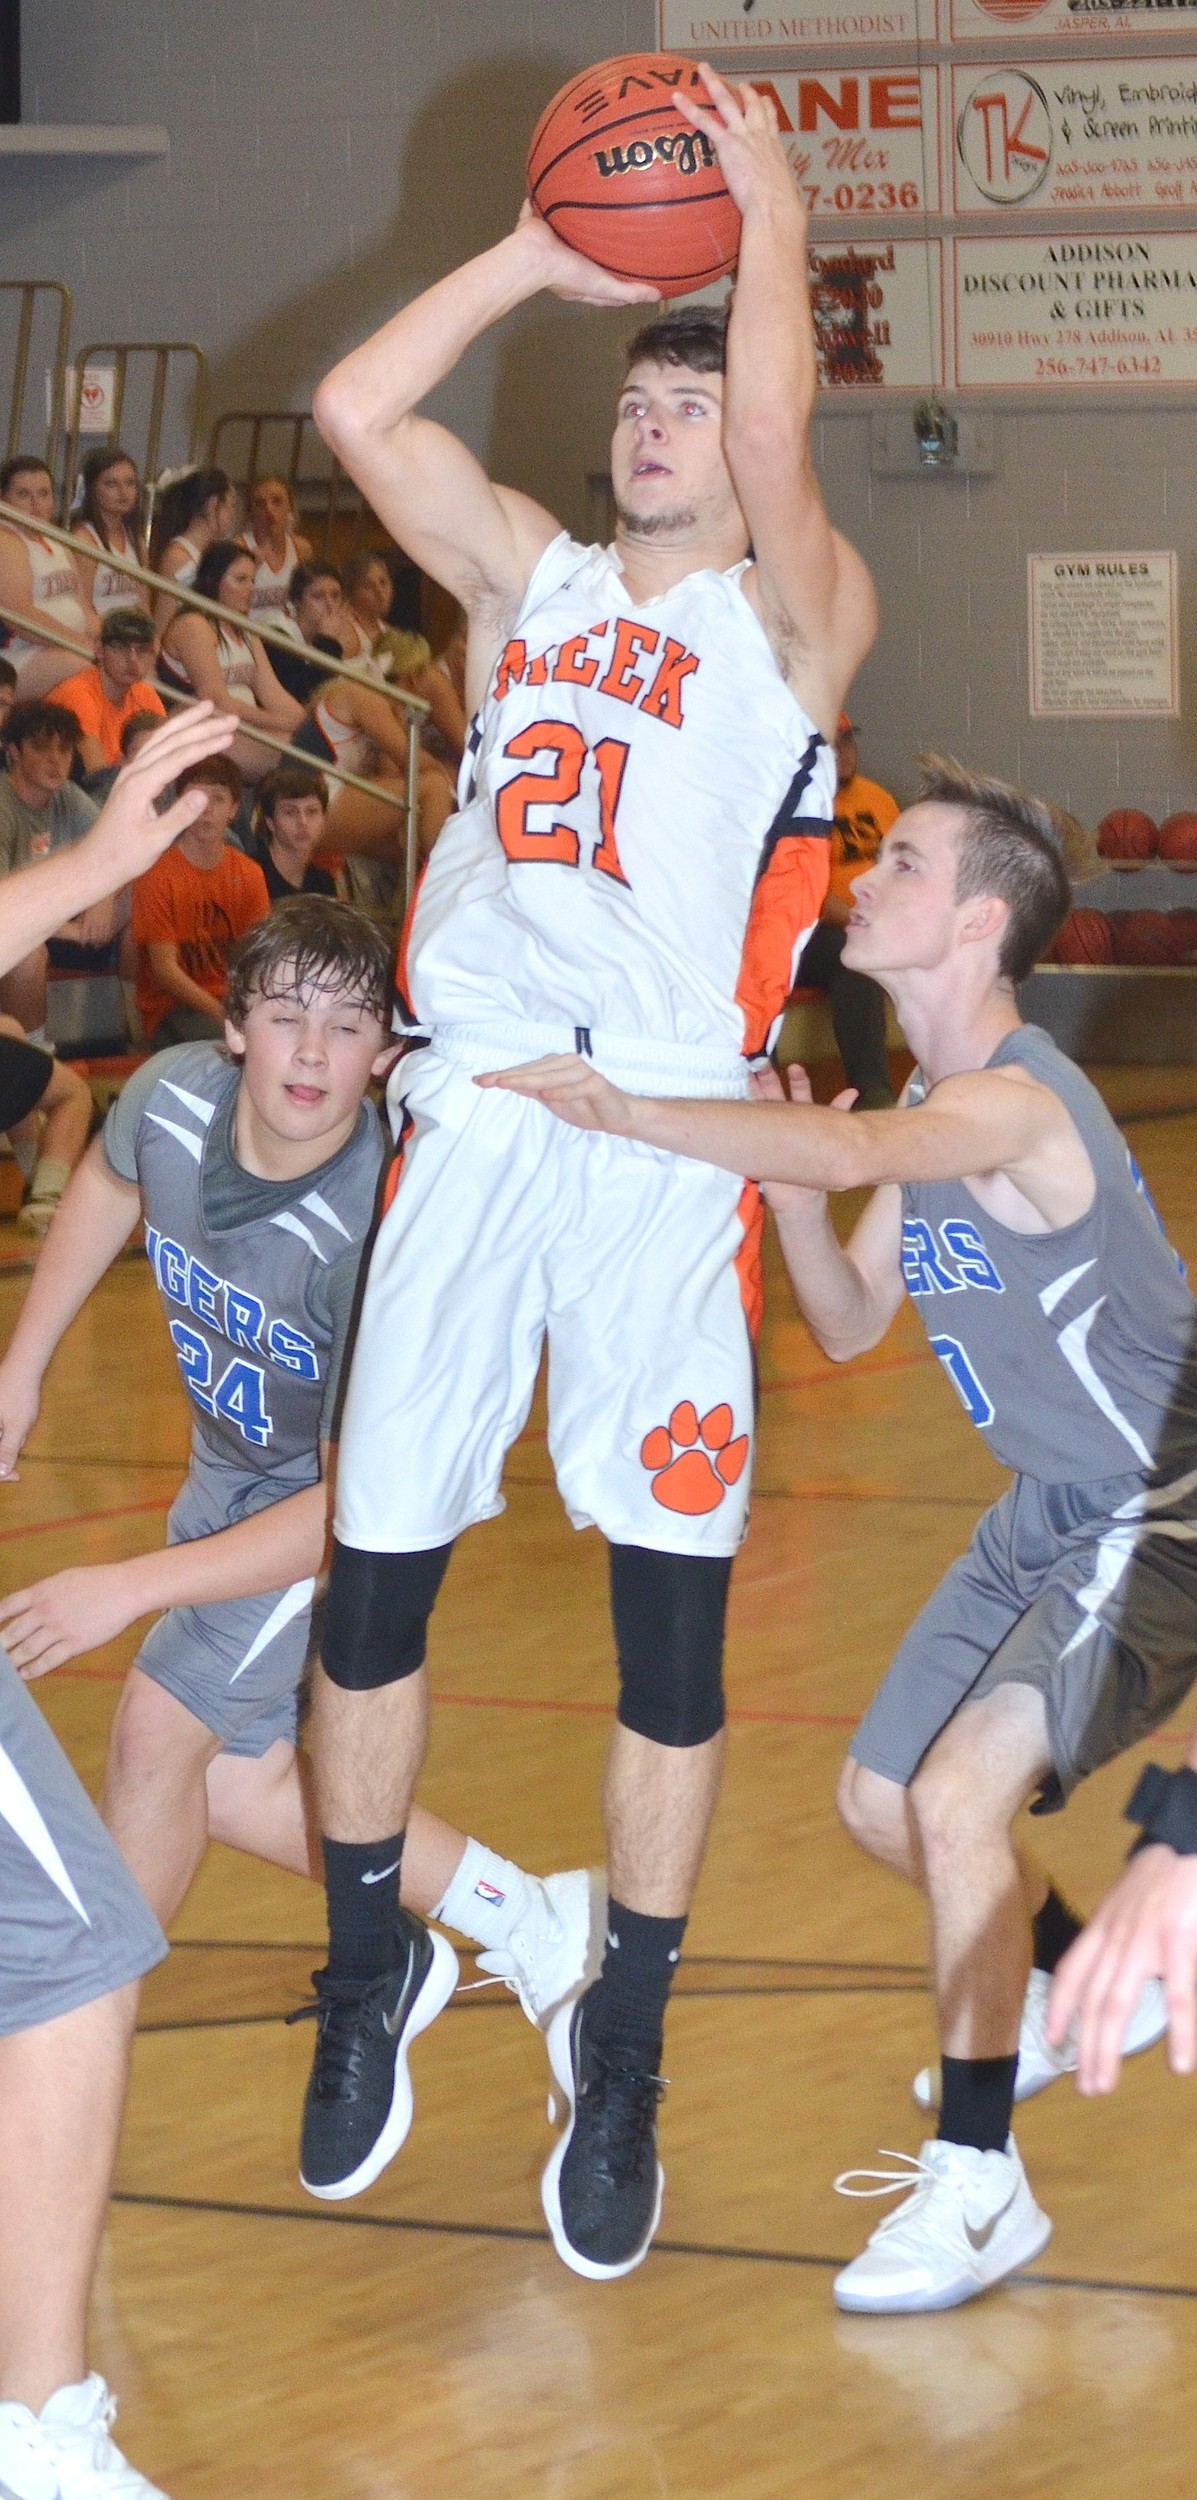 Meek's Luke Sherer (21) shoots a jumper during the Tigers' home game against Brilliant on Monday night. Sherer had 11 points in Meek's 62-36 win. The Tigers are now 4-0 on the season.